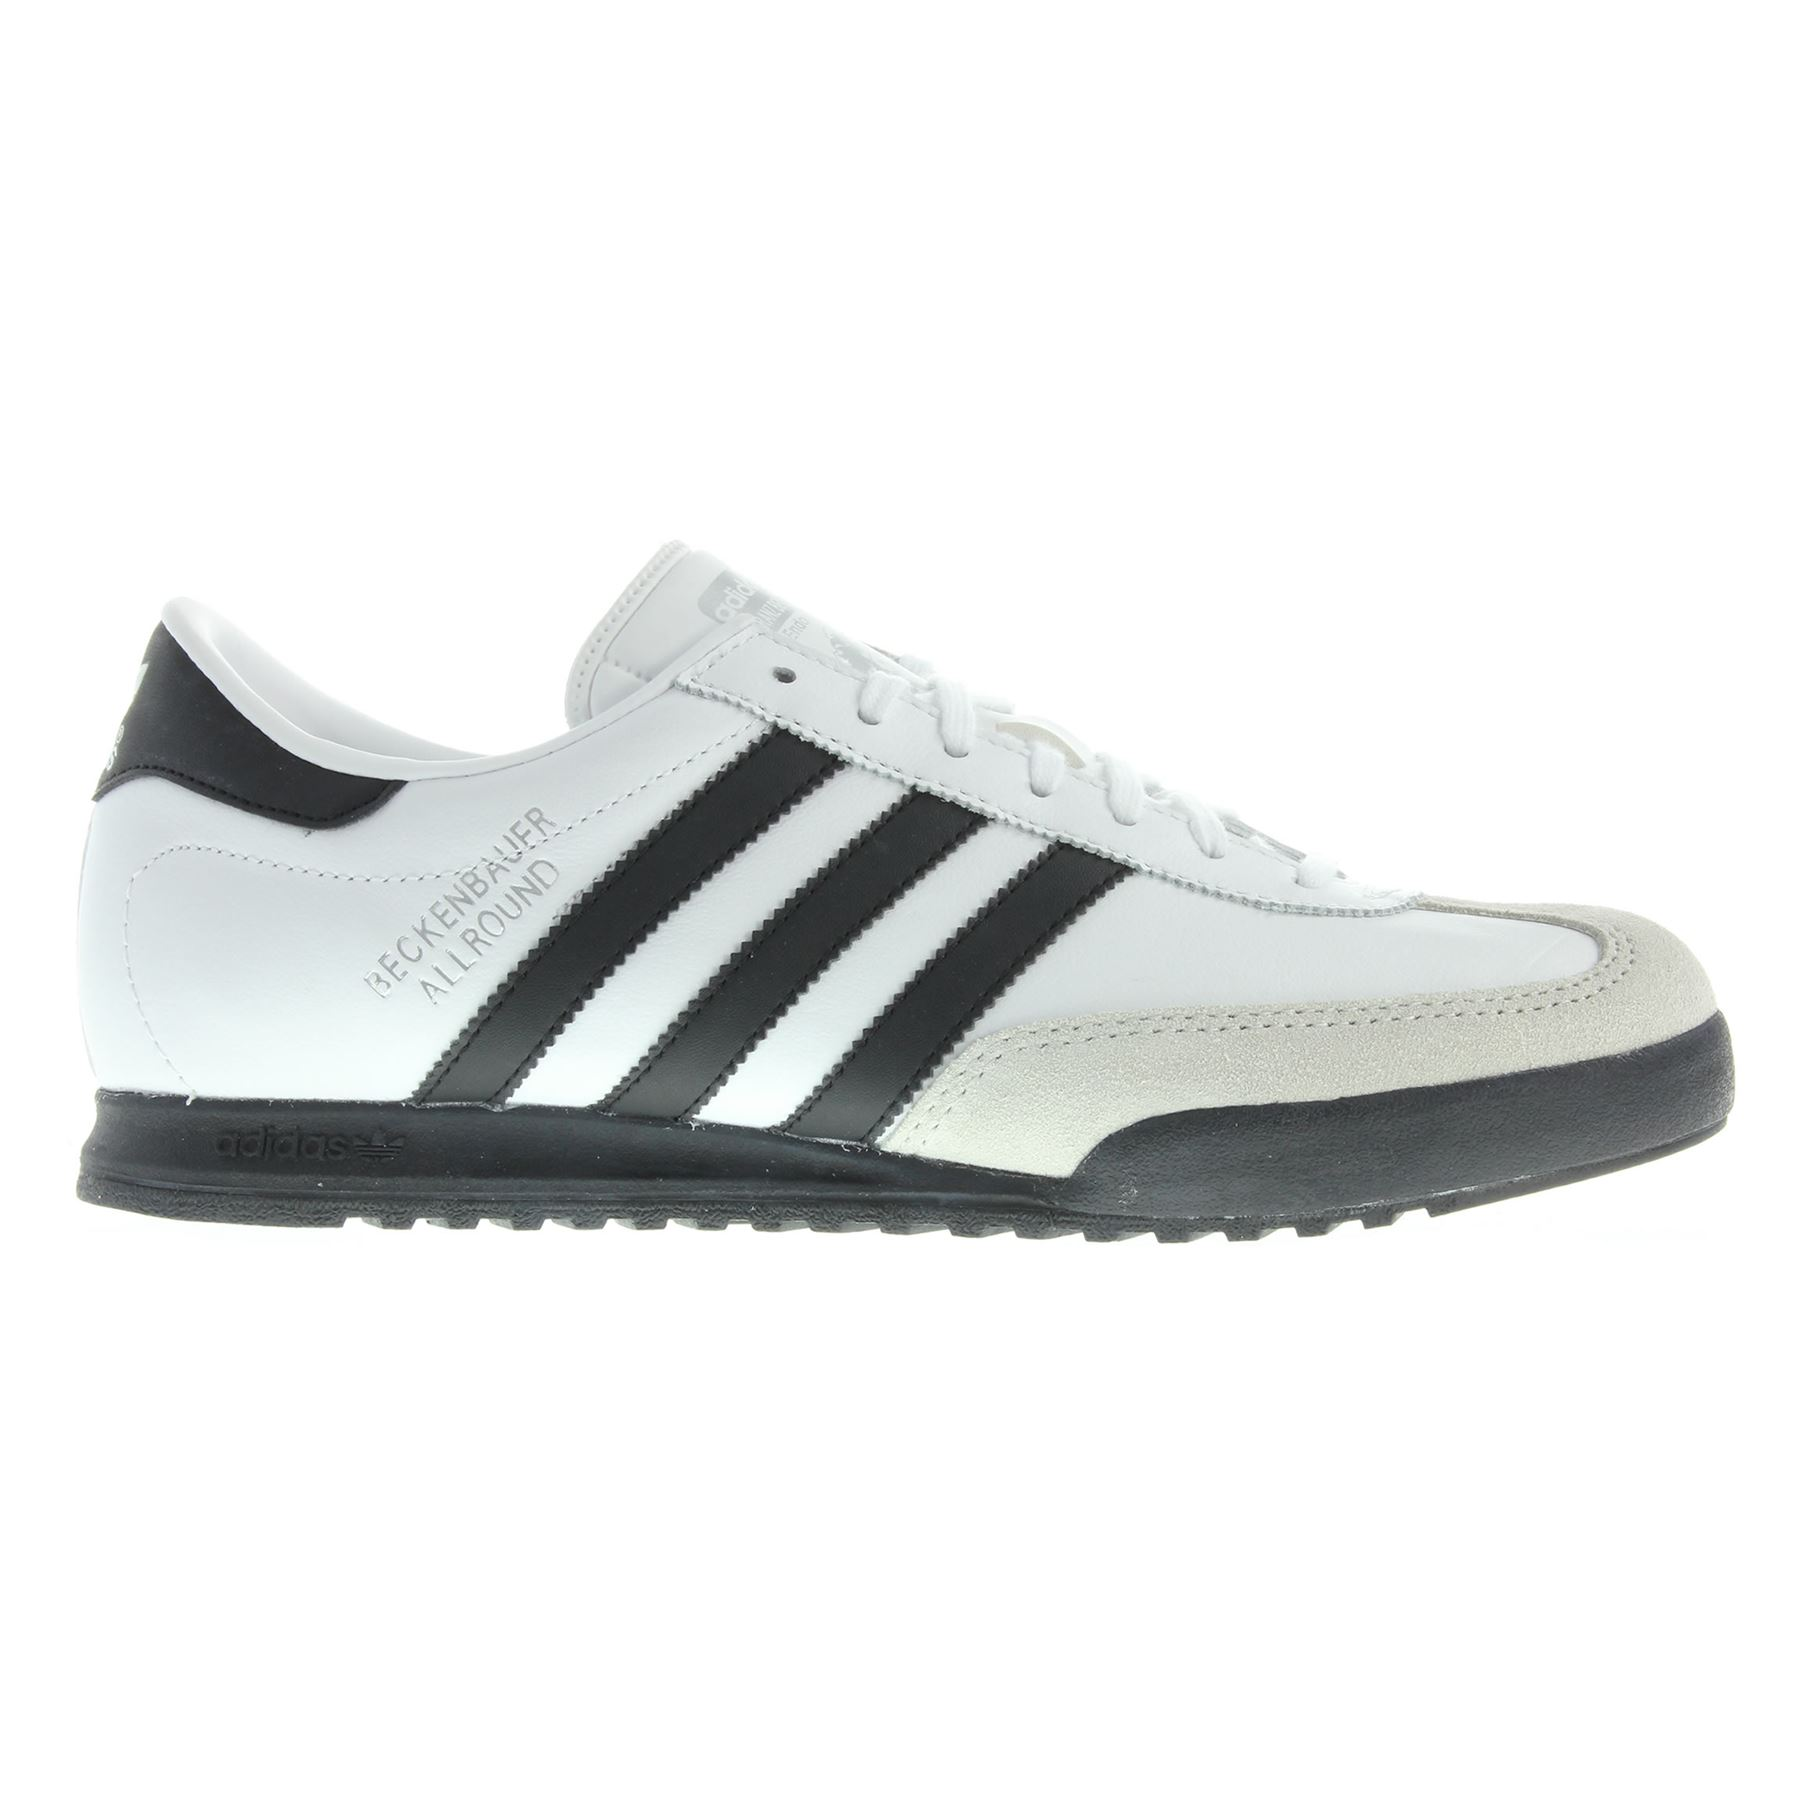 f93b069a1fb3 ADIDAS ORIGINALS MEN S TRAINERS BECKENBAUER ALL ROUND BLUE WHITE BLACK  BROWN